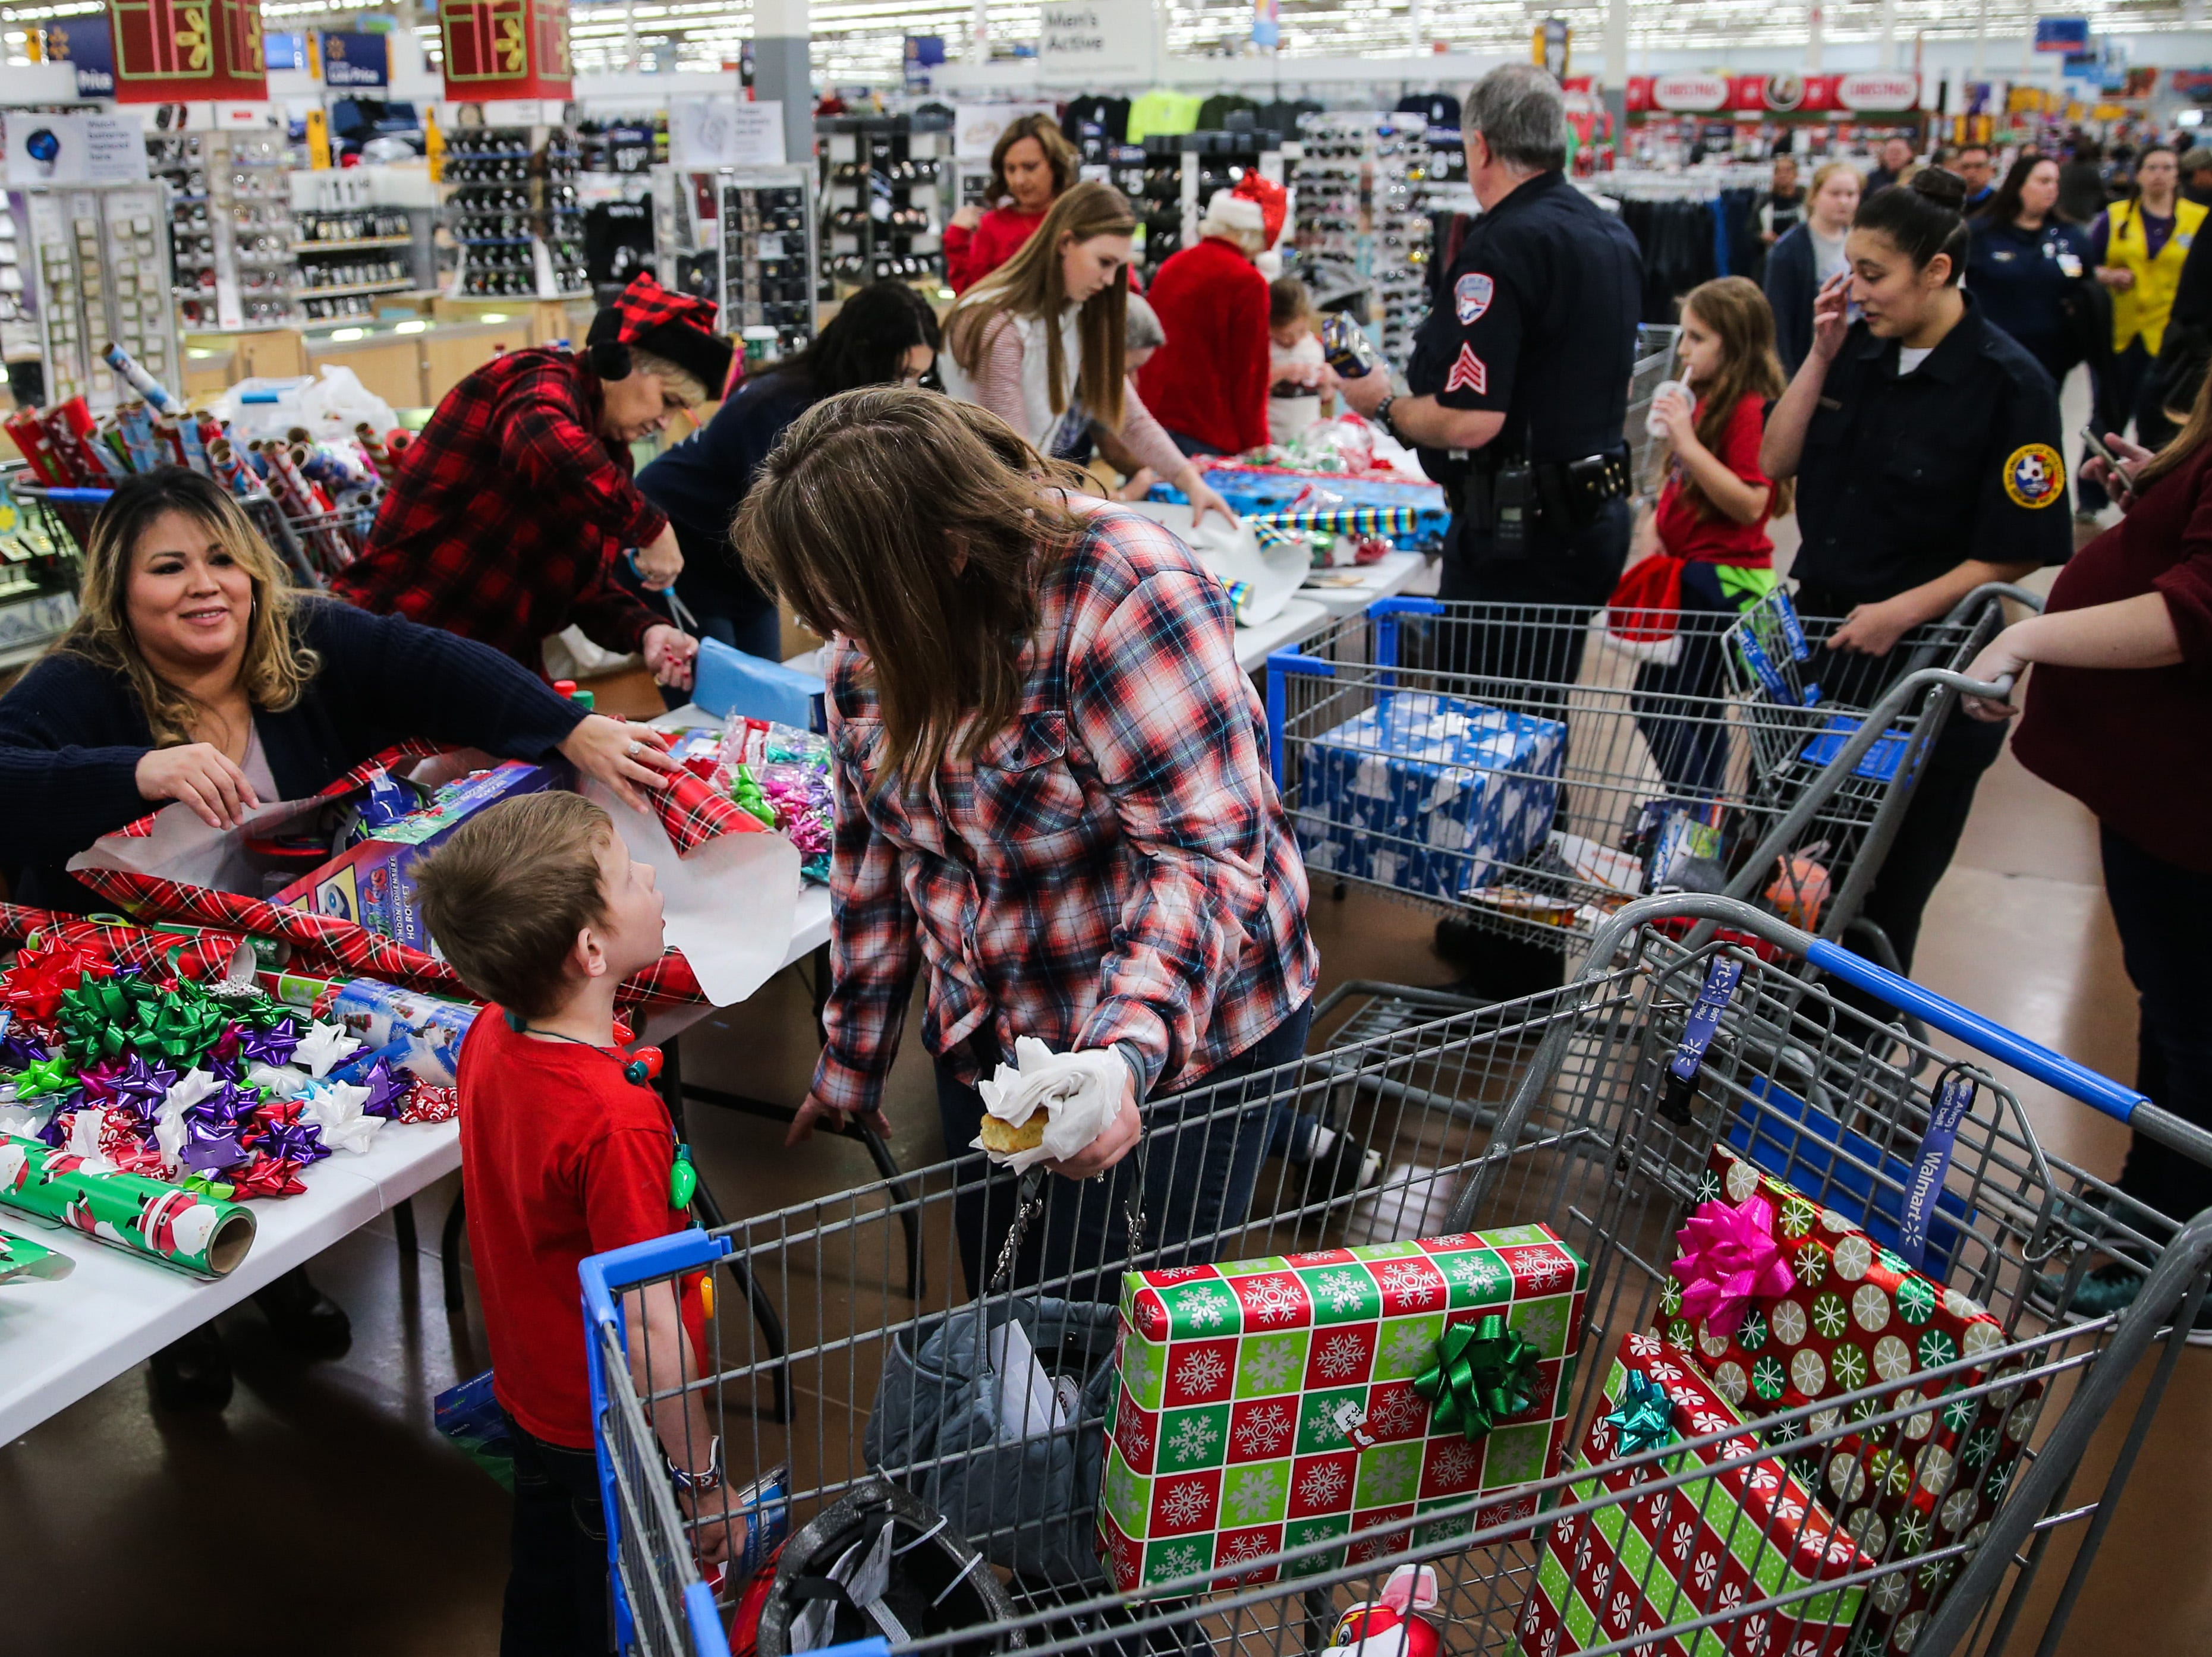 Participants have their gifts wrapped during Shop with a Cop event Saturday, Dec. 15, 2018, at Walmart.